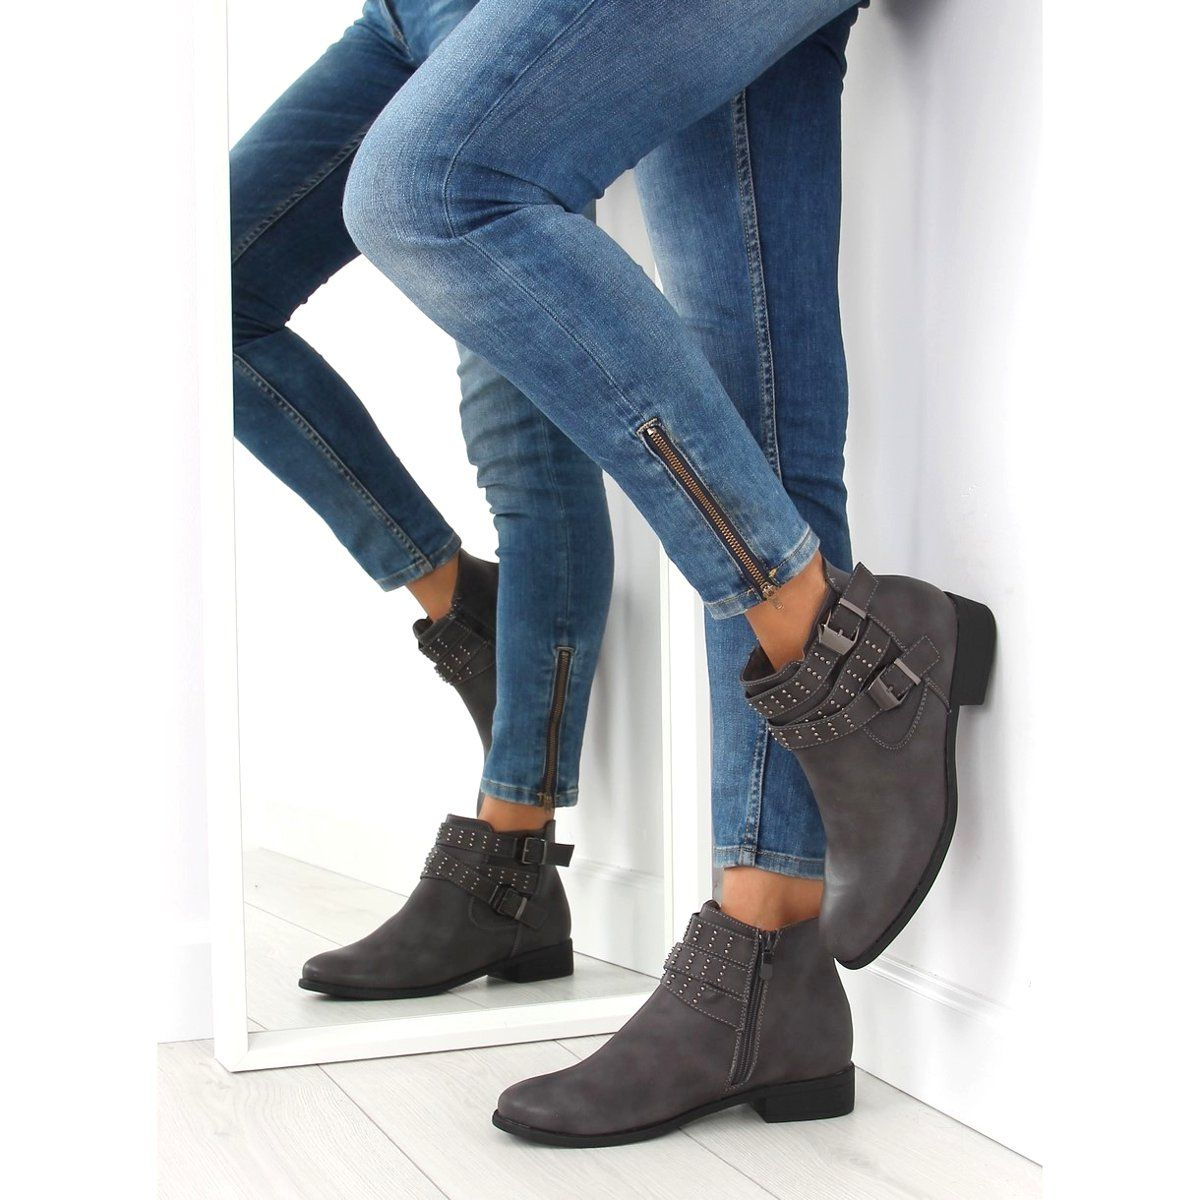 Botki Sztyblety Szare Pe153p Grey Shoes Boots Bootie Boots